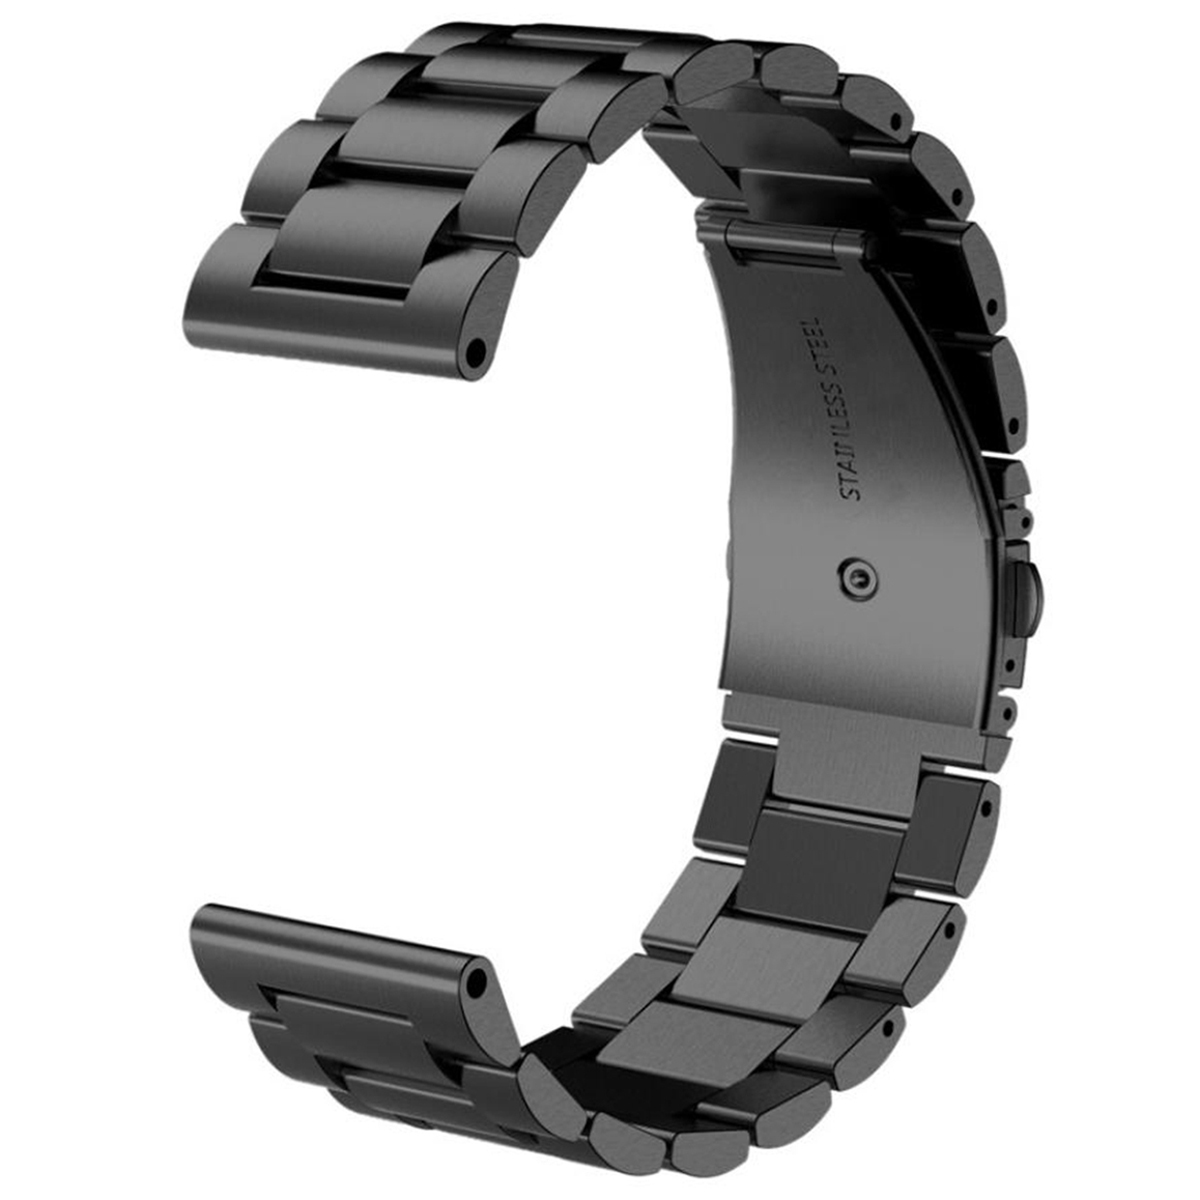 Three Bead Watch Band for Garmin Fenix 3